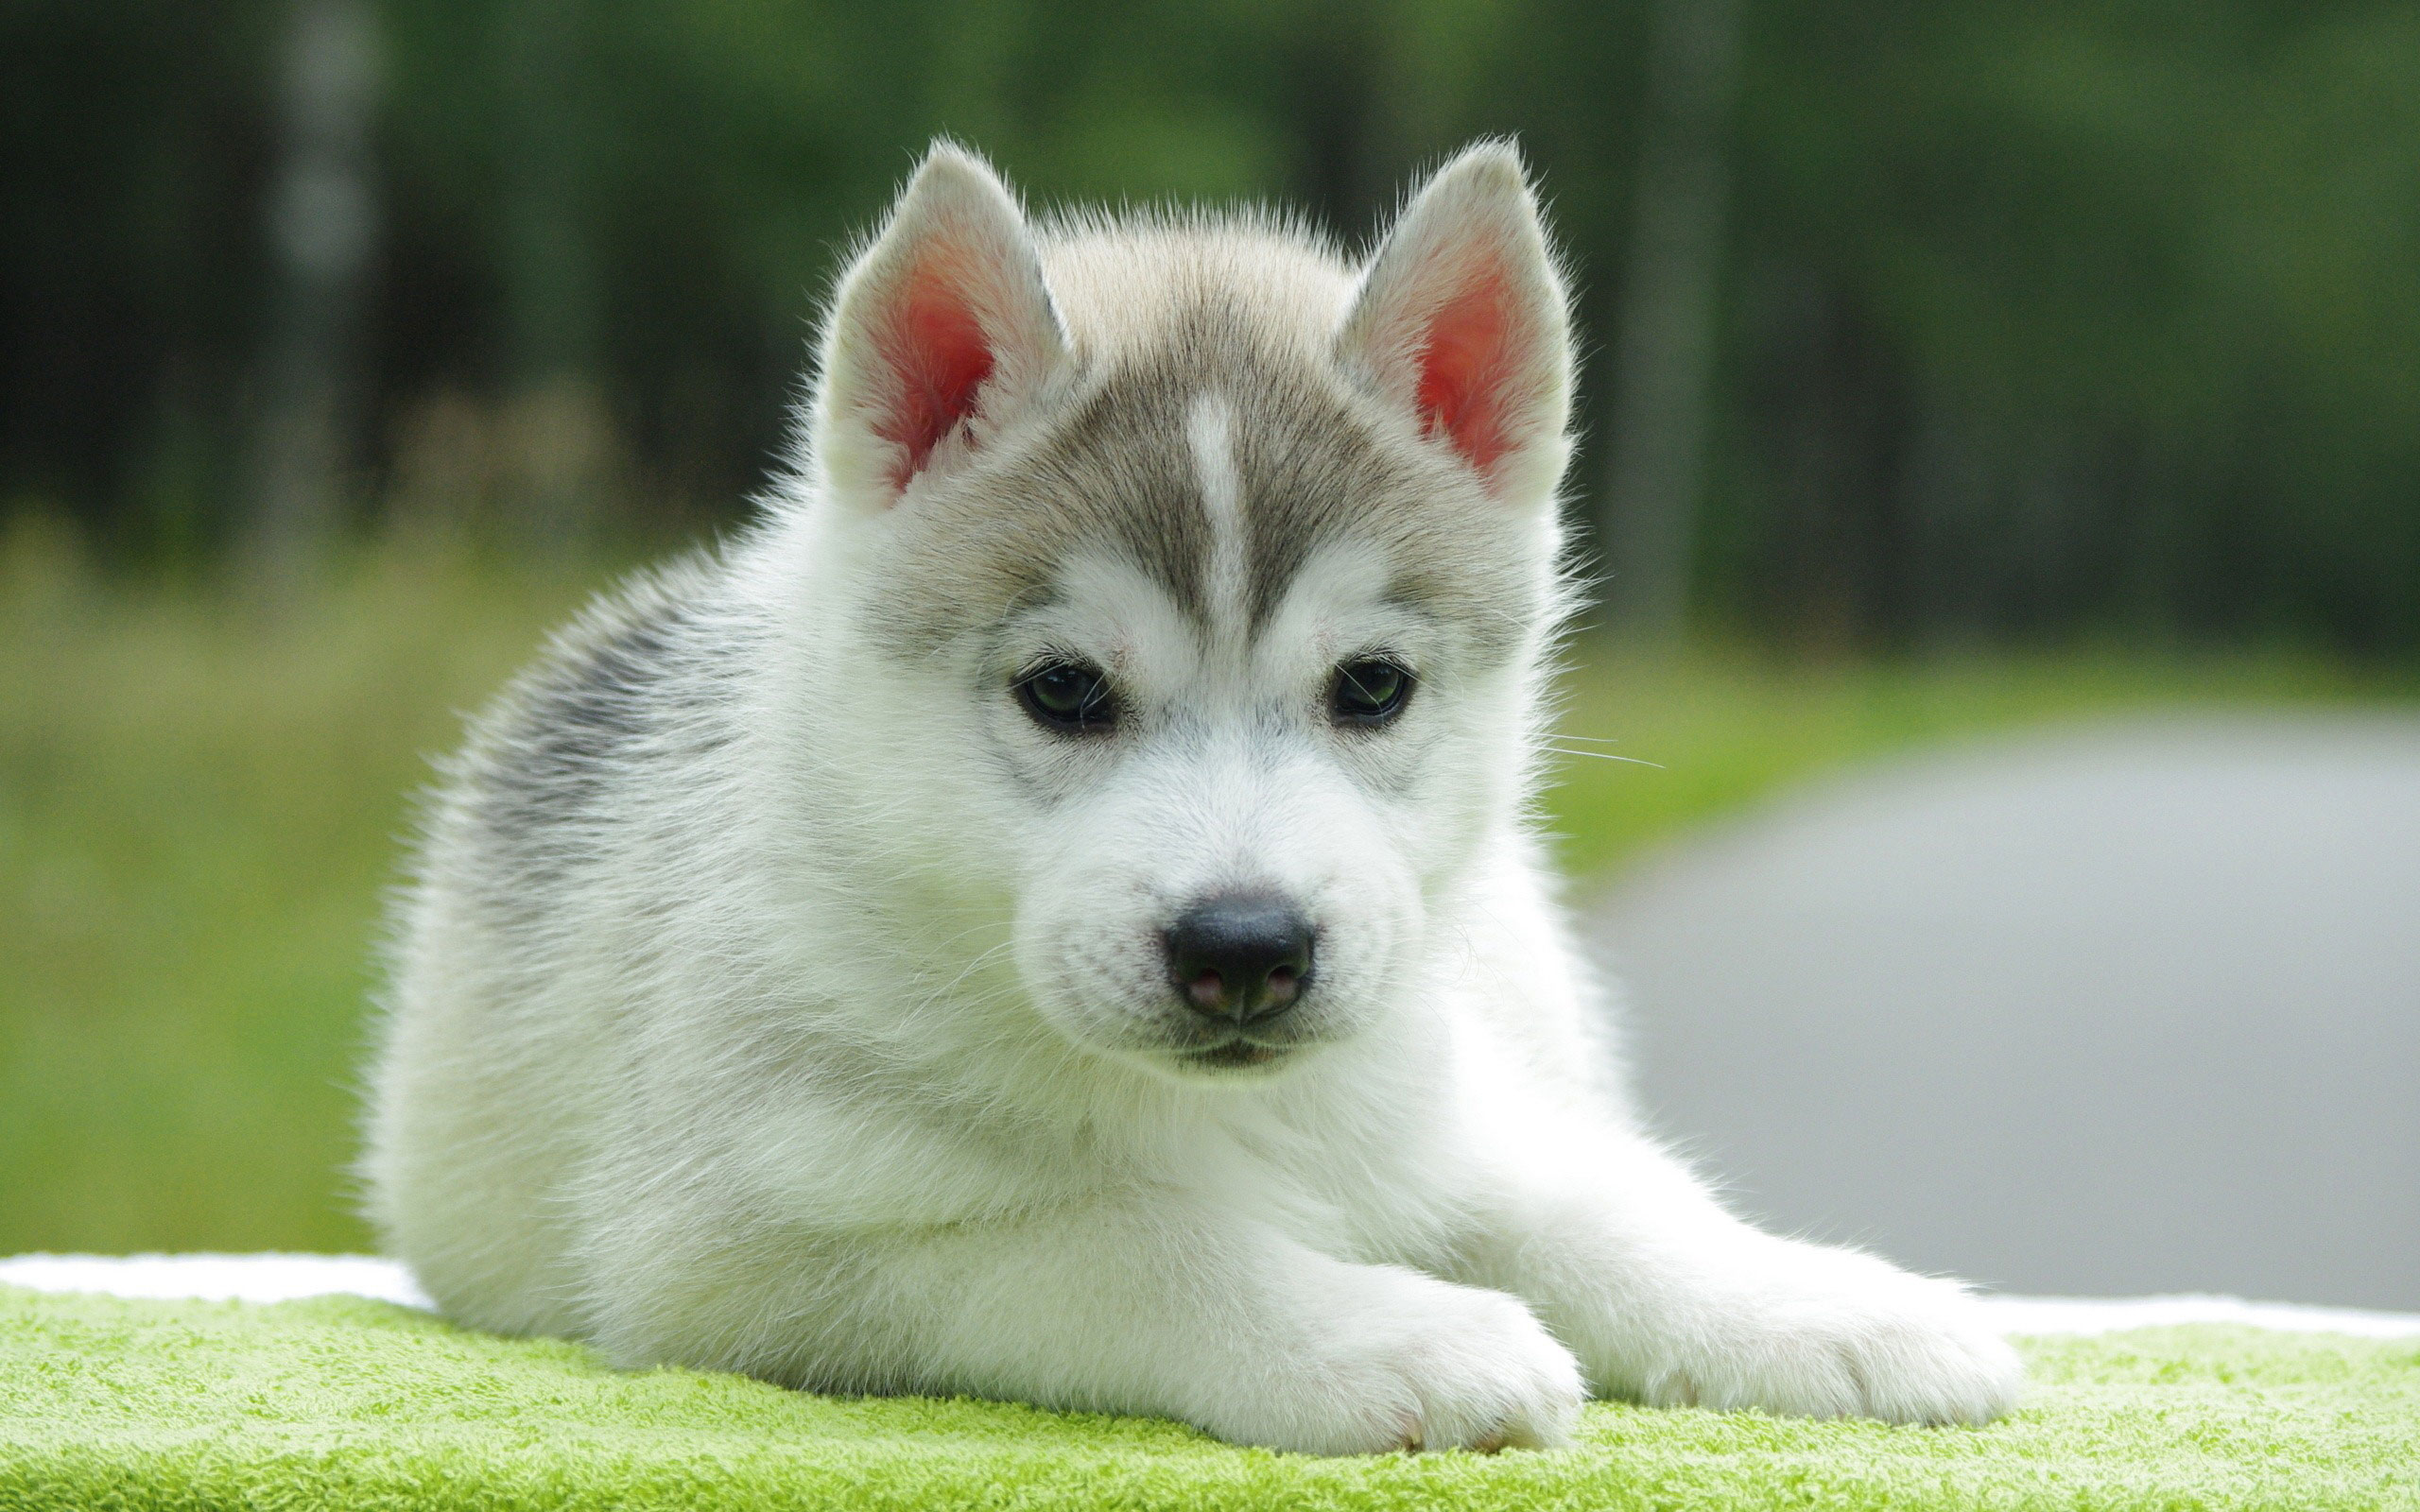 puppy wallpapers 2560x1600